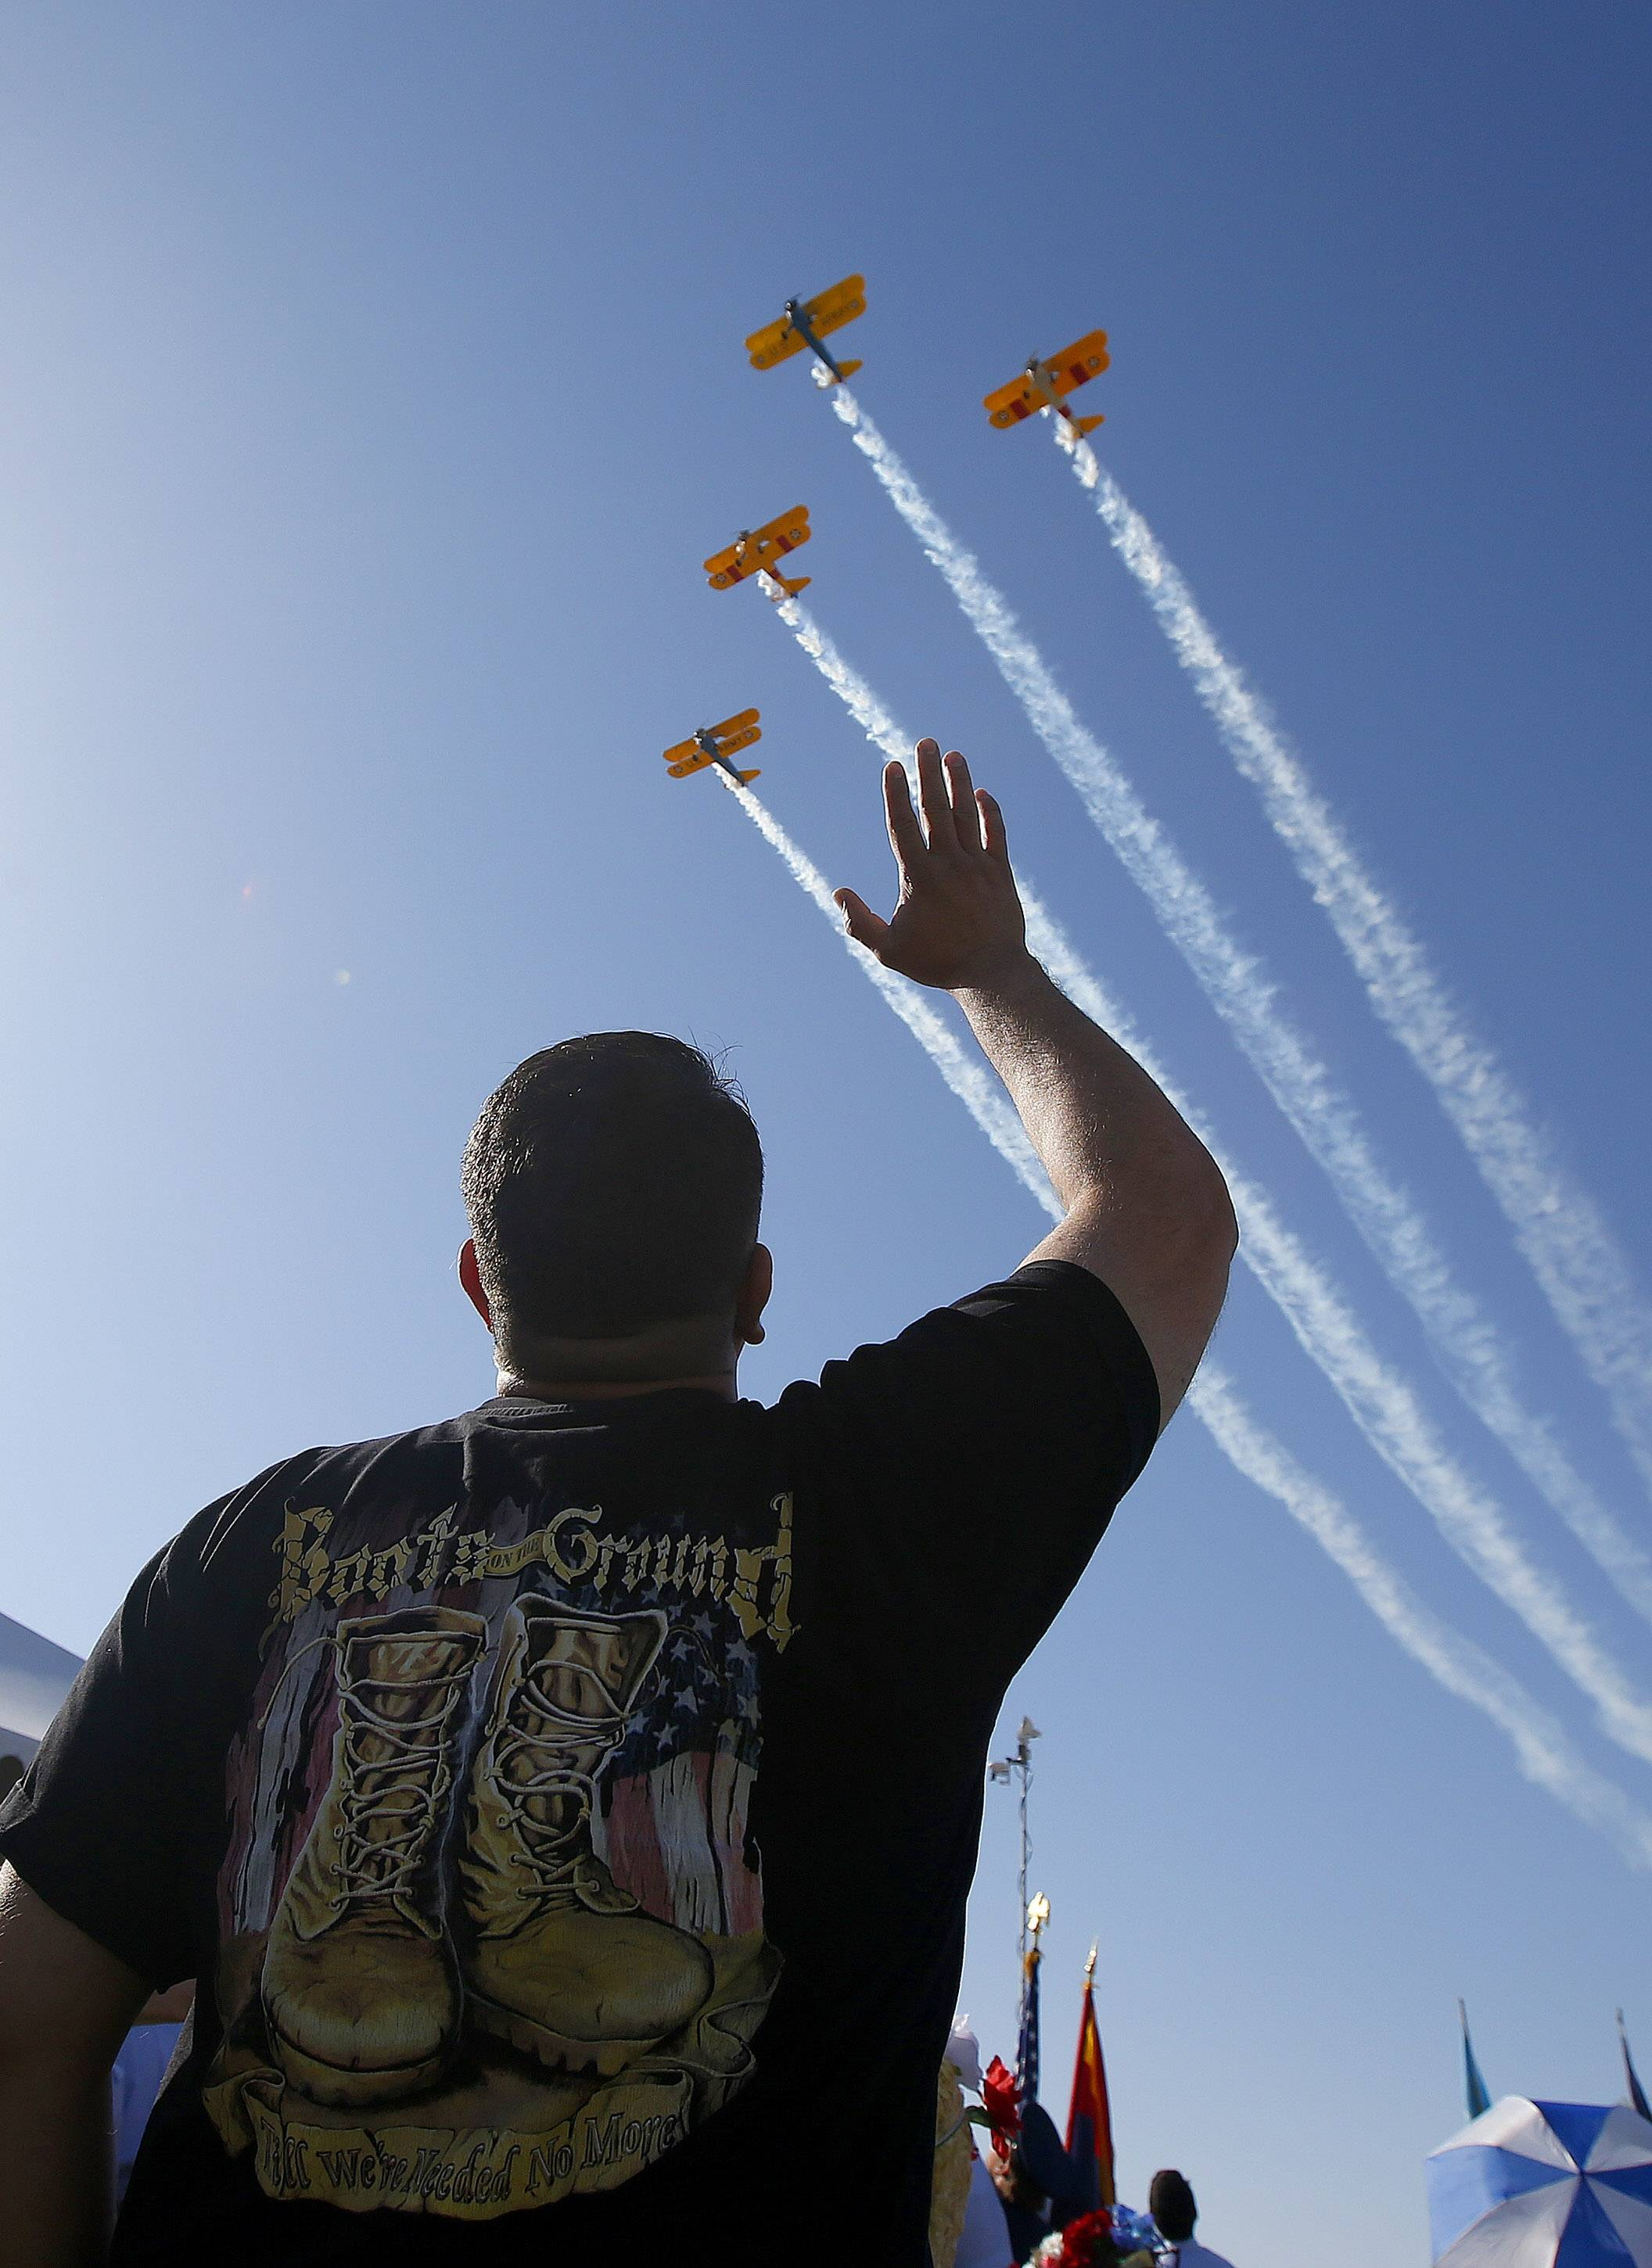 An Iraq War veteran waves as planes fly over during a Memorial Day ceremony at the National Memorial Cemetery of Arizona, Monday, May 26, 2014, in Phoenix.